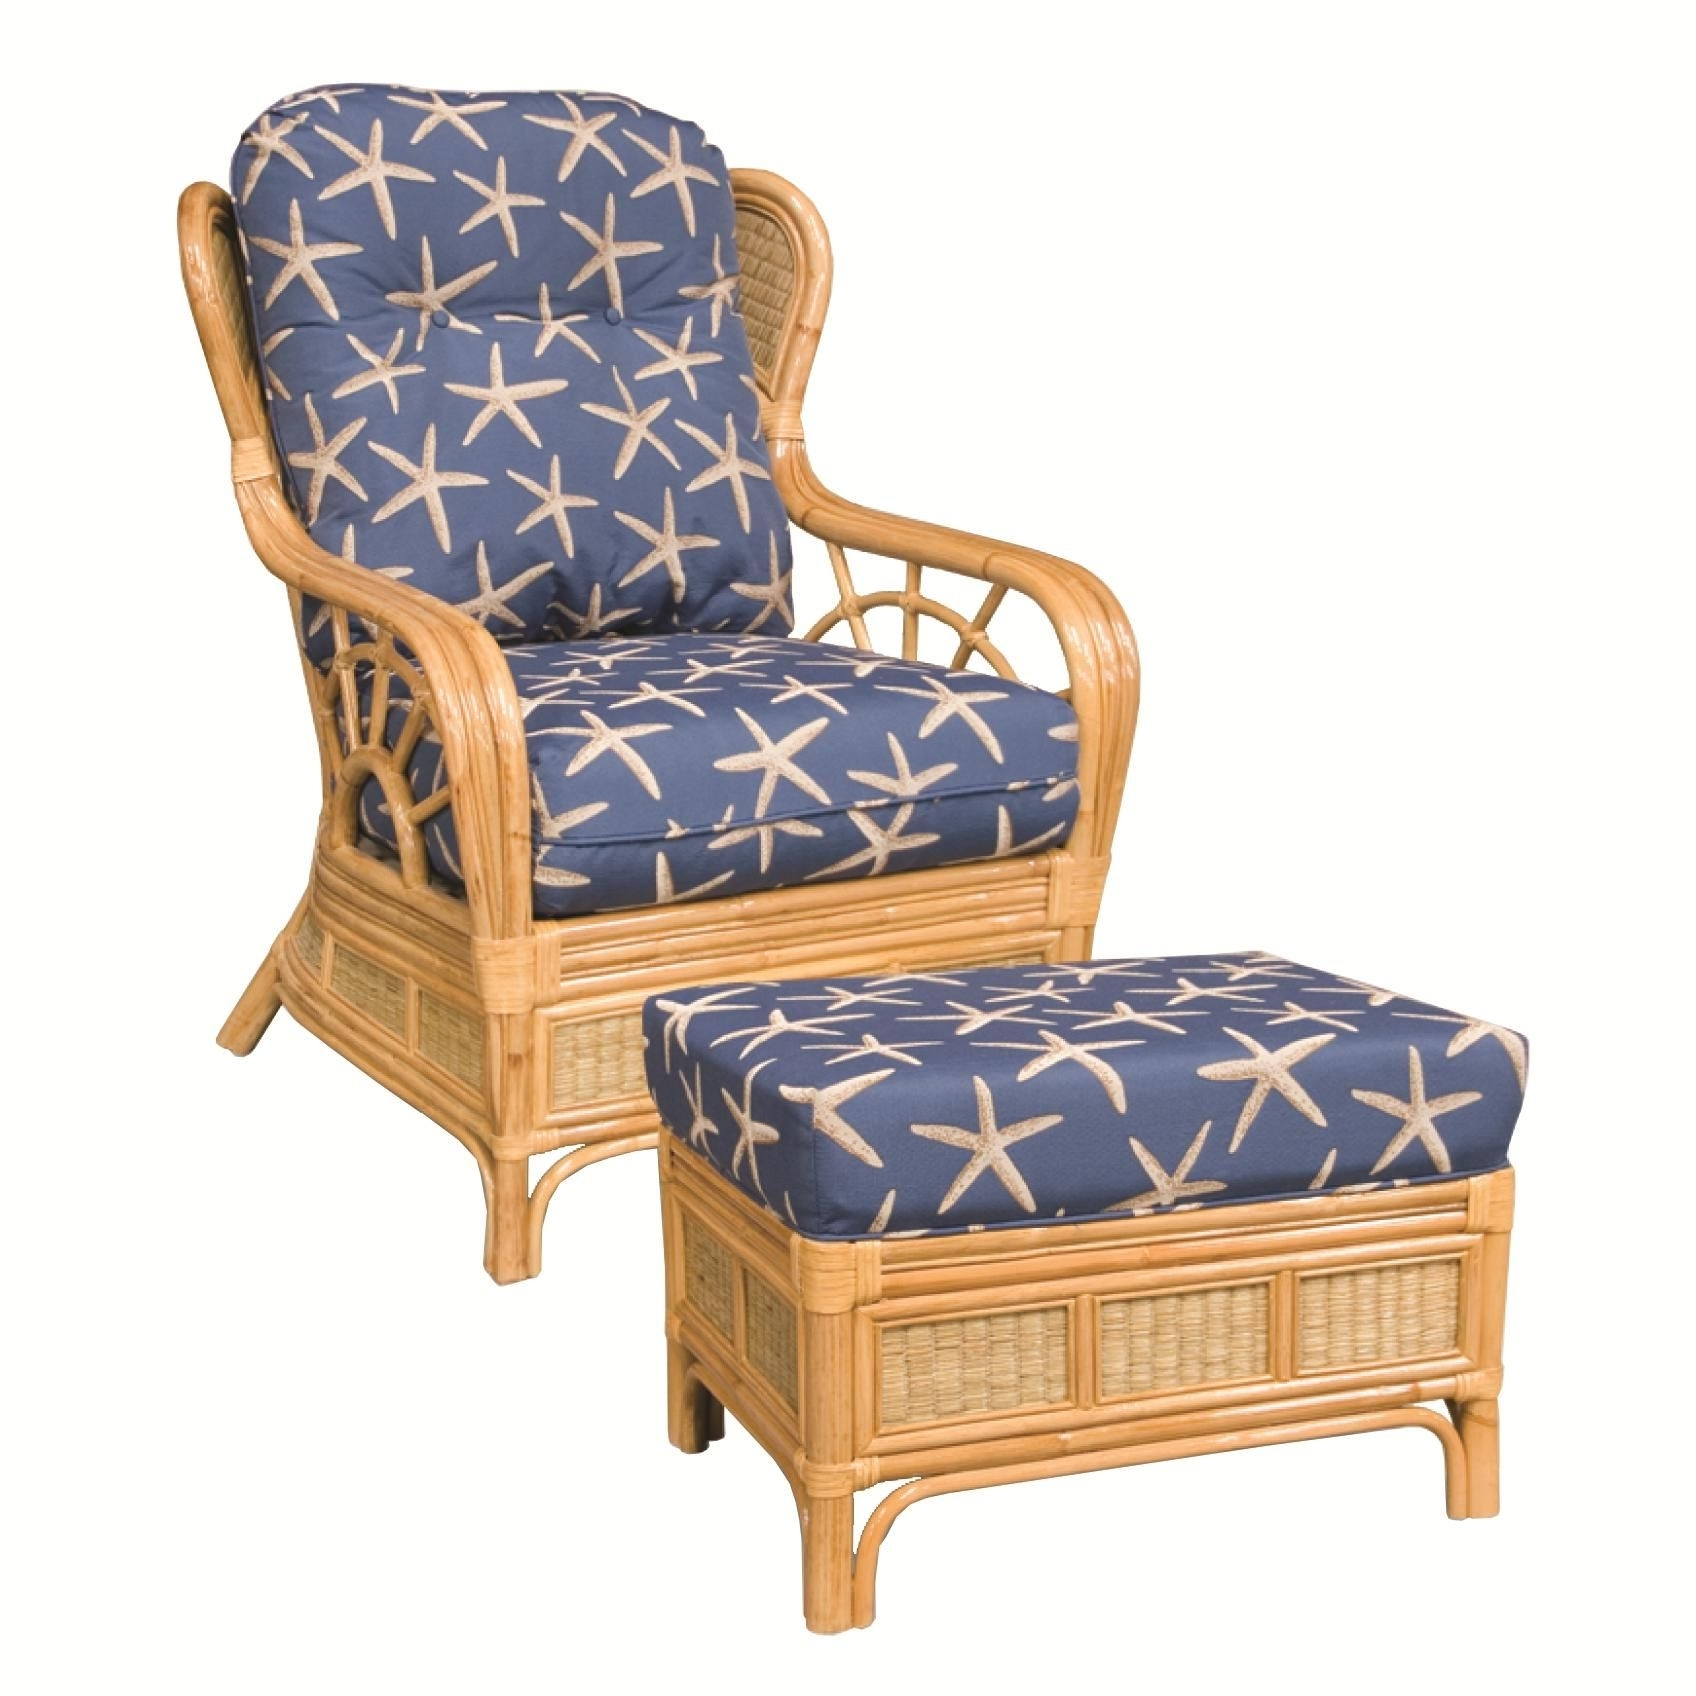 Fashionable Wicker Rocking Chairs And Ottoman With 381 Collection Wicker Rattan Chair And Ottomancapris Furniture (View 15 of 15)